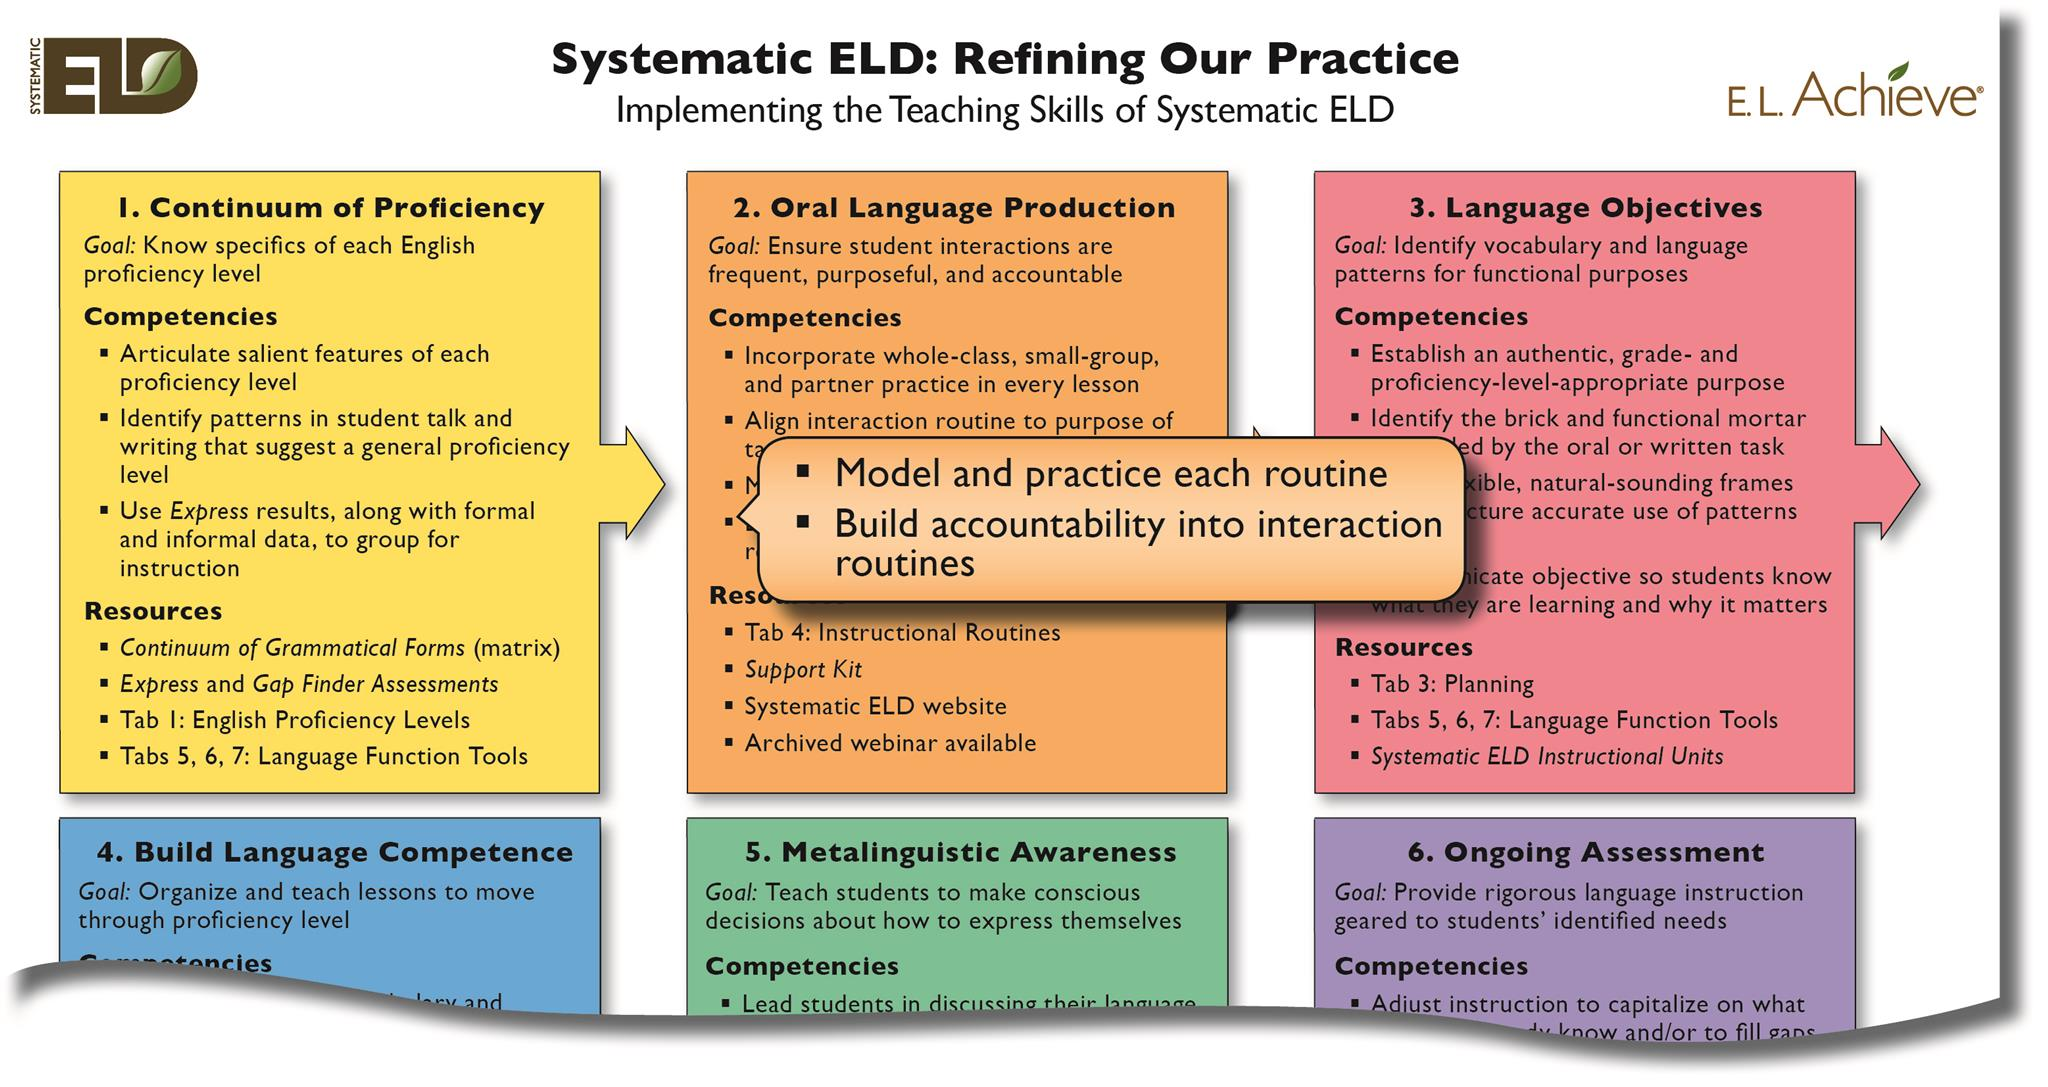 Learning Walks Blog SysELD ROP Card wpopout graphic